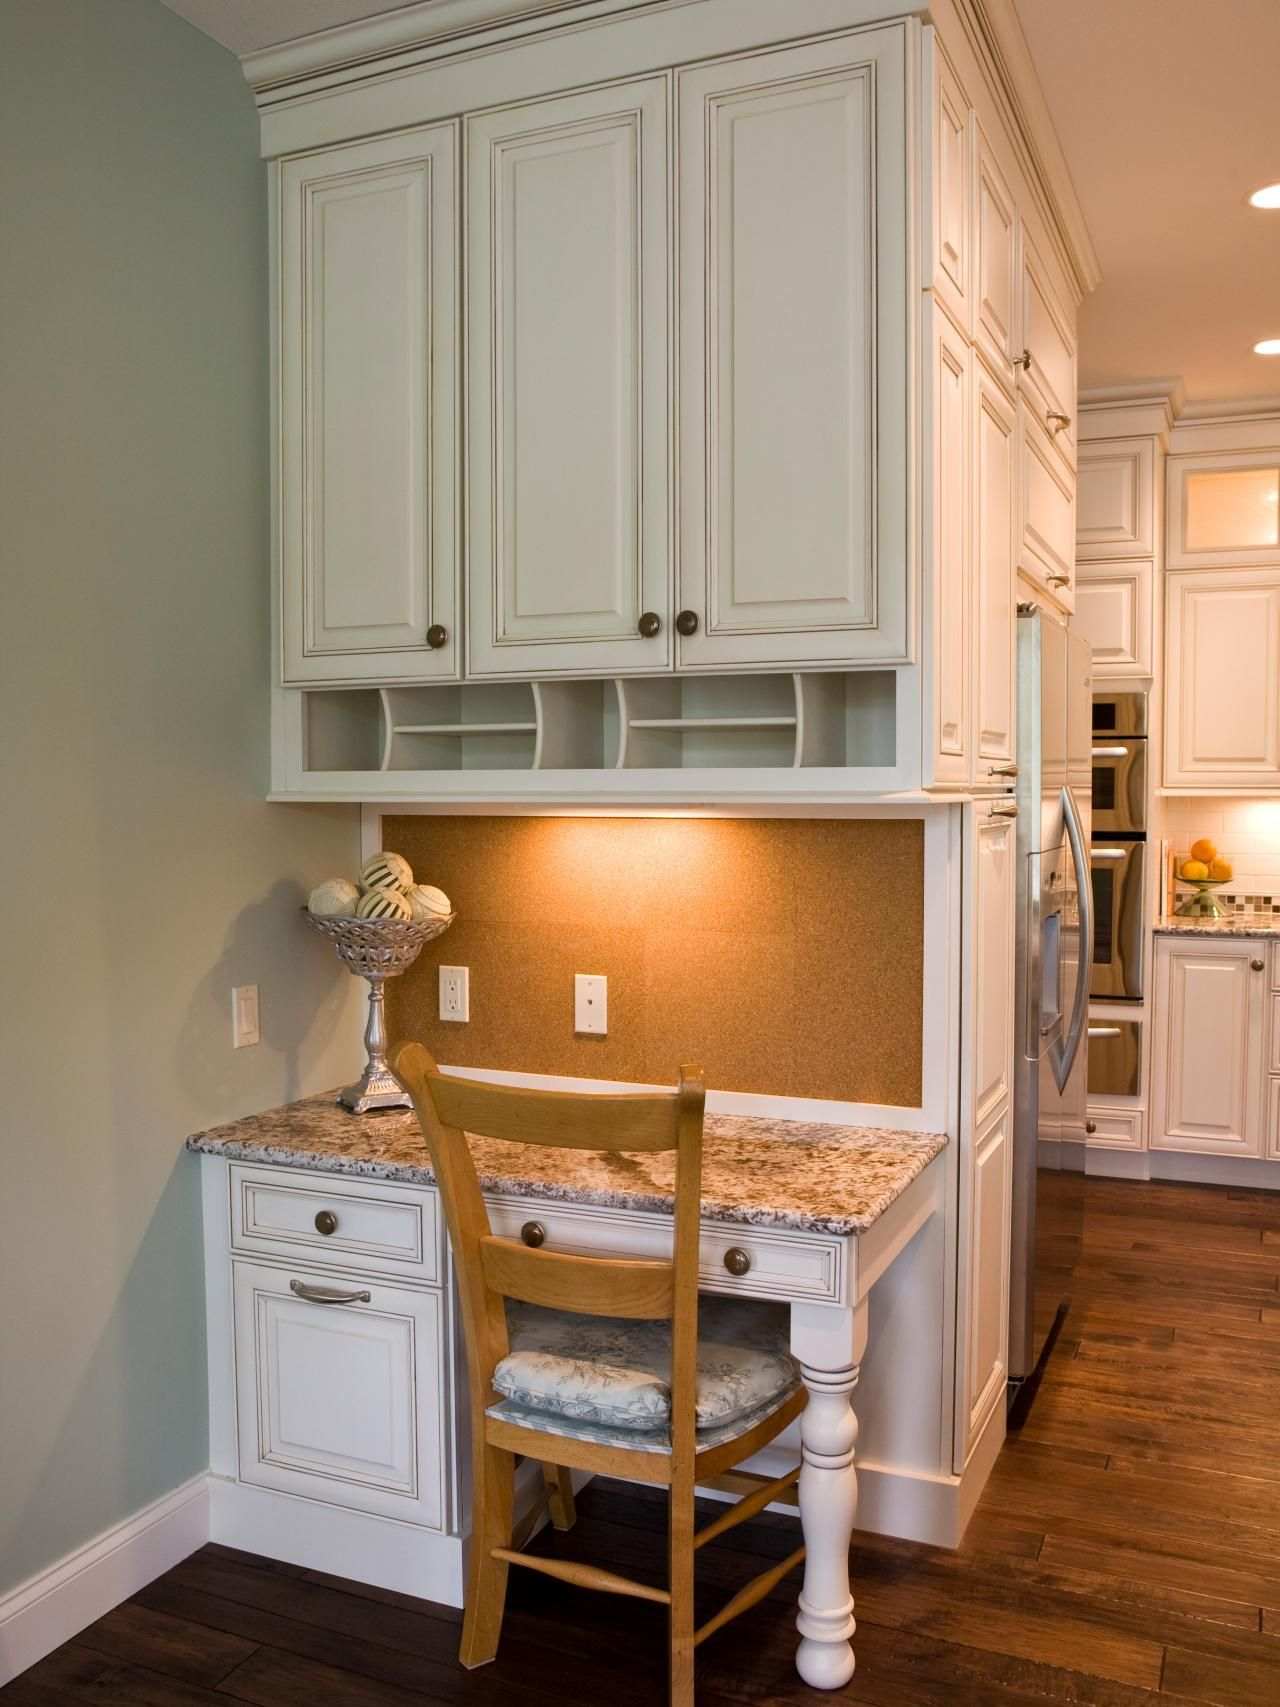 work station kitchen win a makeover this custom designed desk area features plenty of